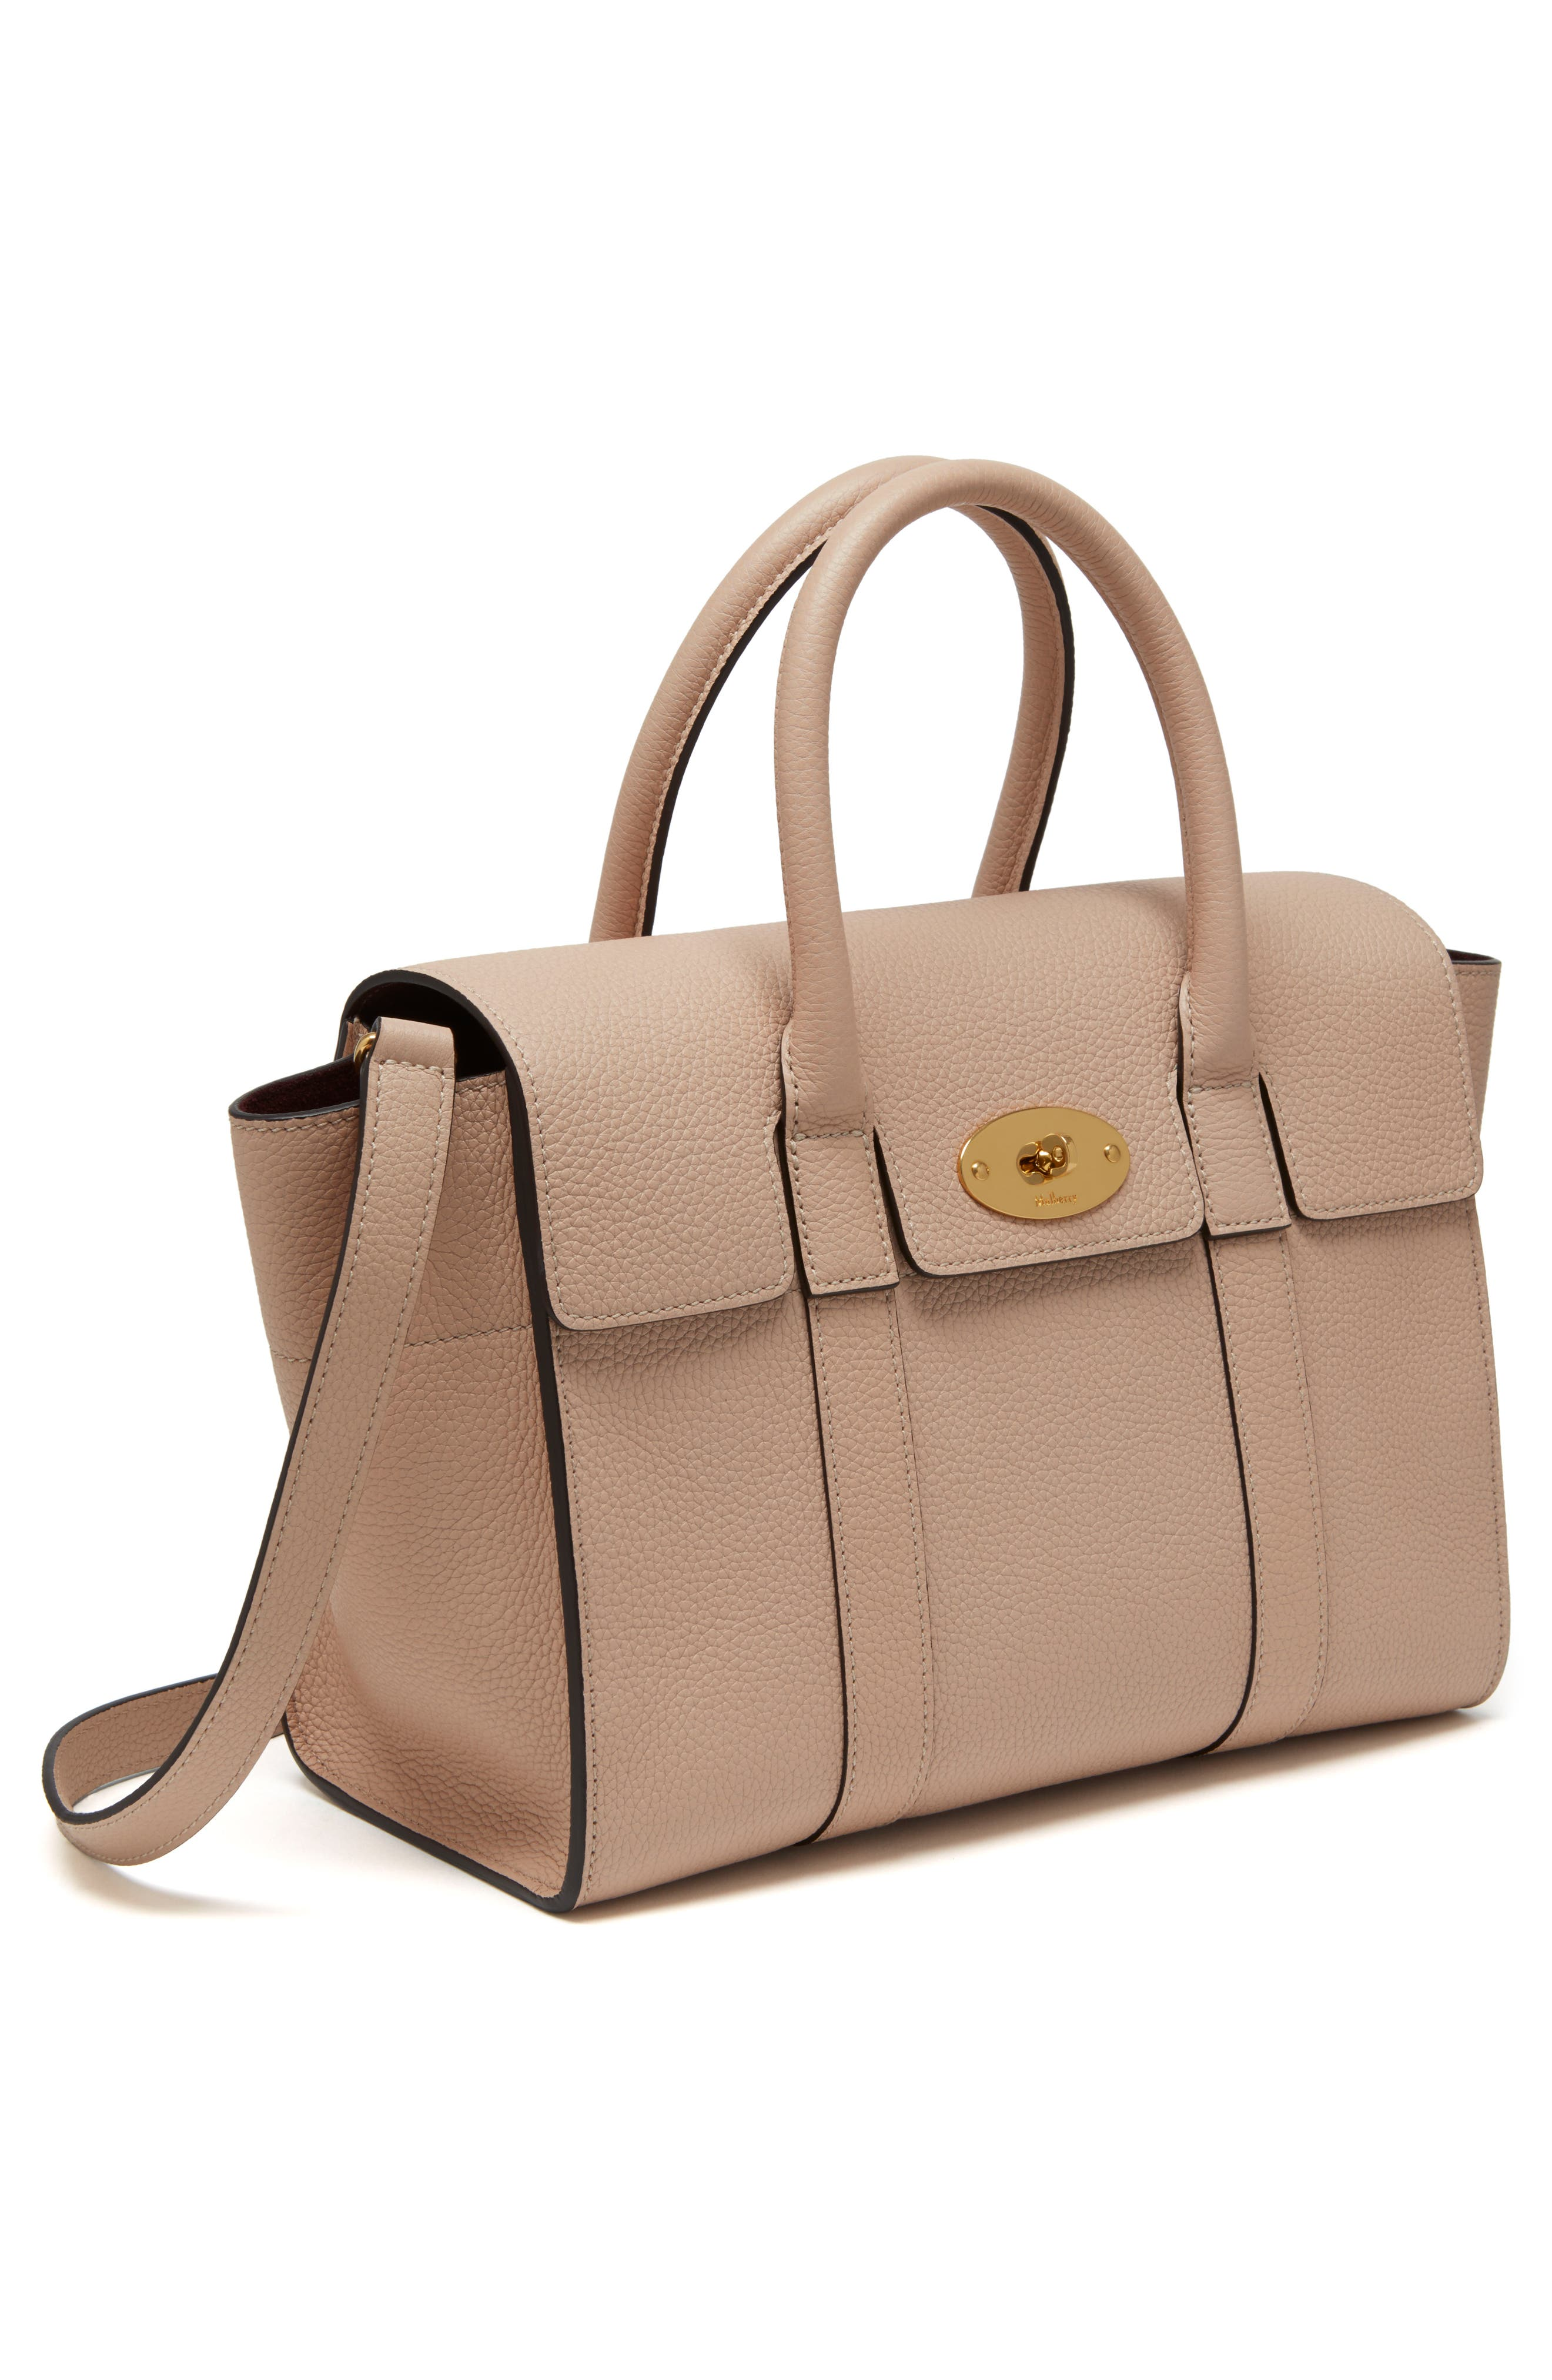 Alternate Image 1 Selected - Mulberry Small Bayswater Leather Satchel